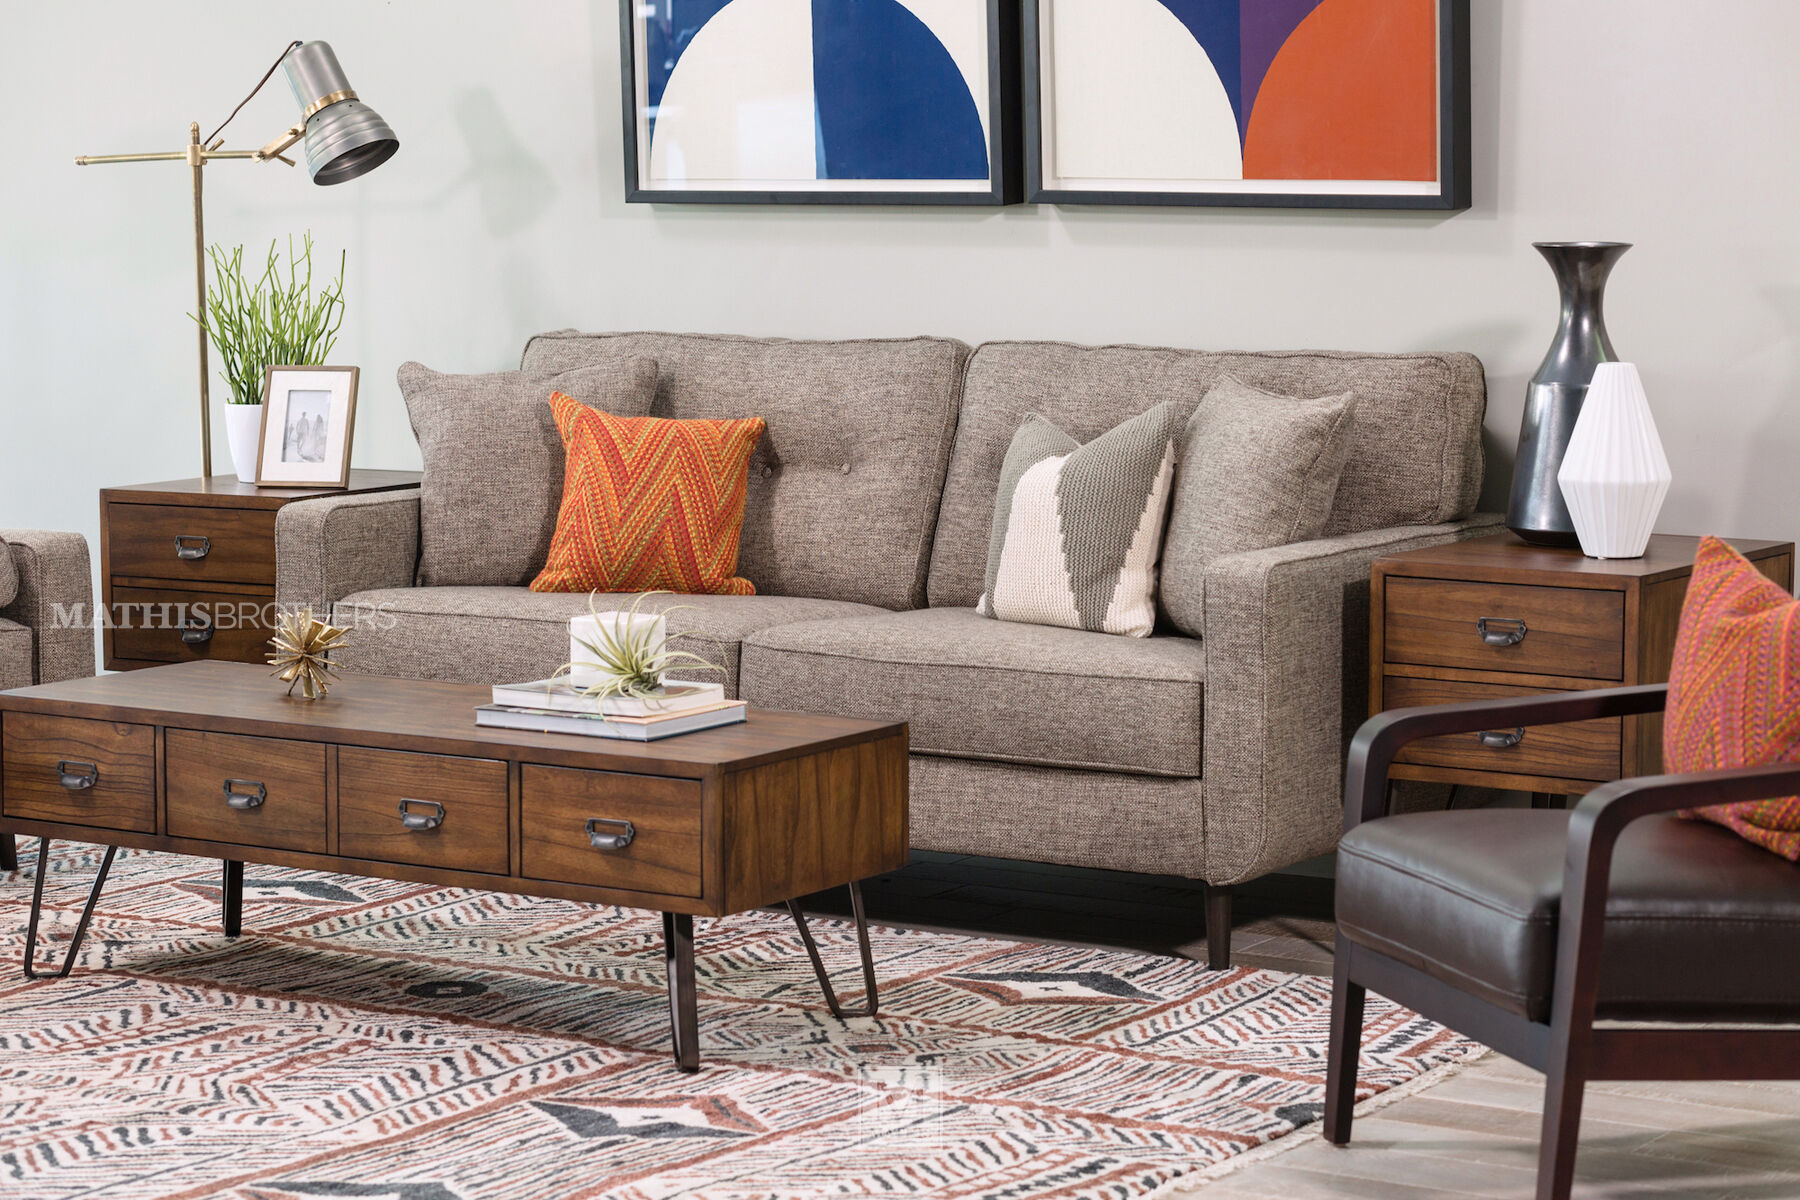 gray microfiber power reclining sofa rattan set online india sofas & couches   mathis brothers furniture stores